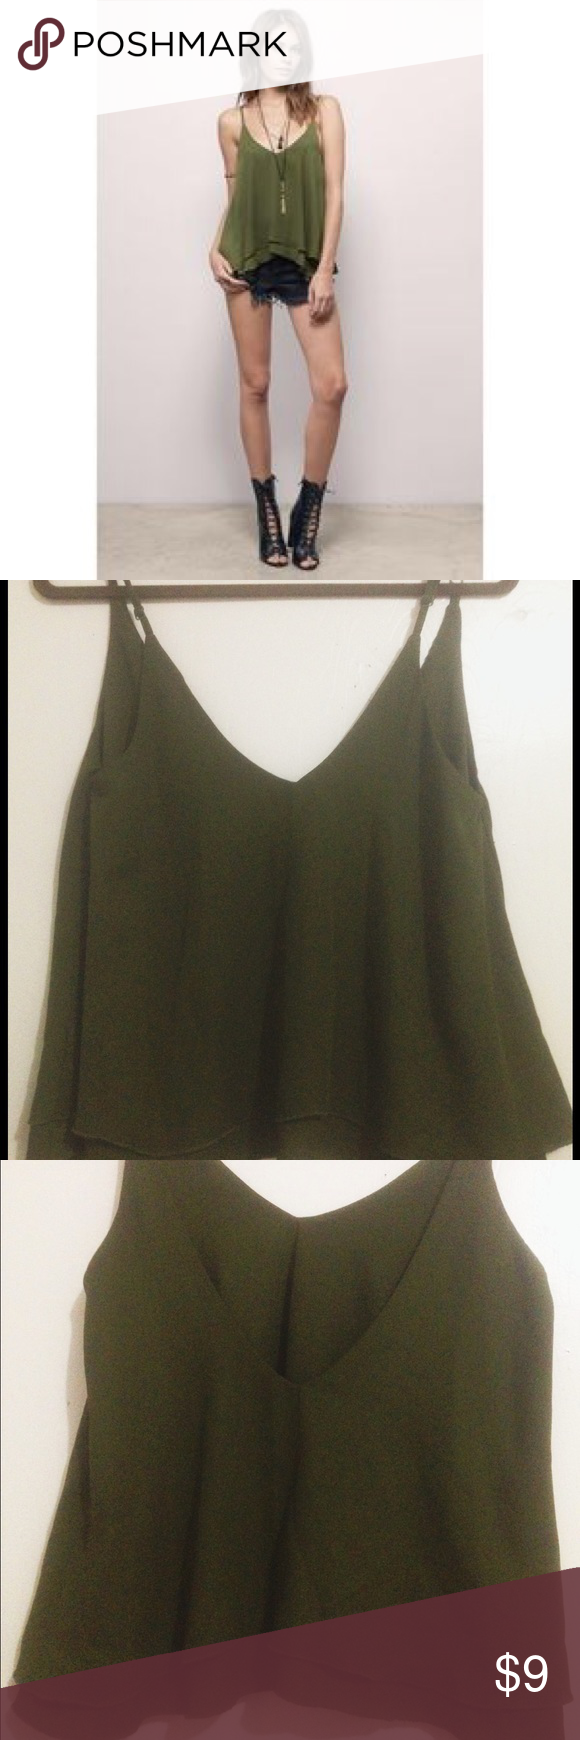 Olive green tank top 🌻 Perfect for a summer day out! Wear with jeans or shorts . Adjustable straps. Like new condition. Love the back on this 💚 Tobi Tops Tank Tops